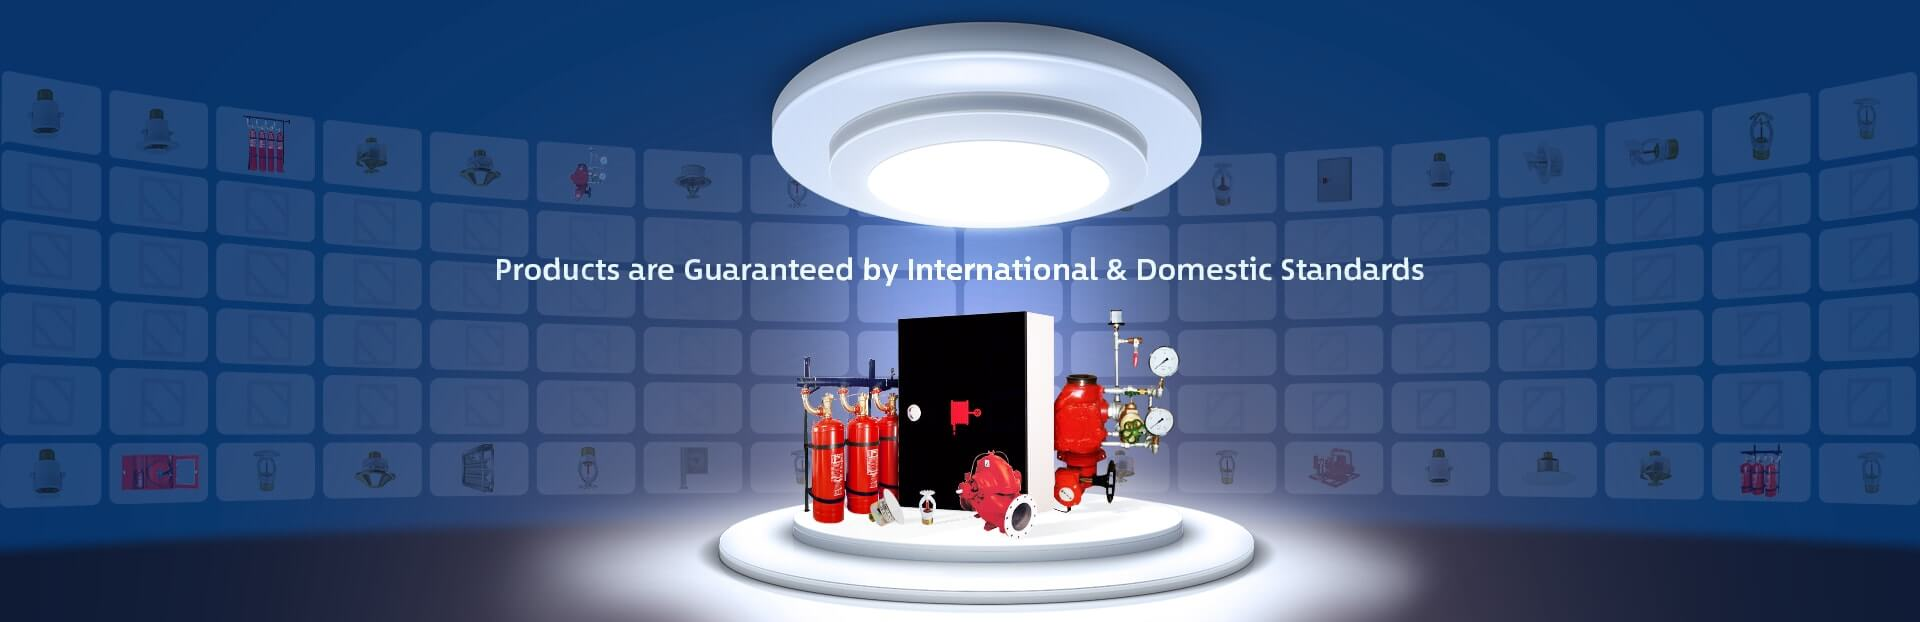 Products are Guaranteed by International & Domestic Standards